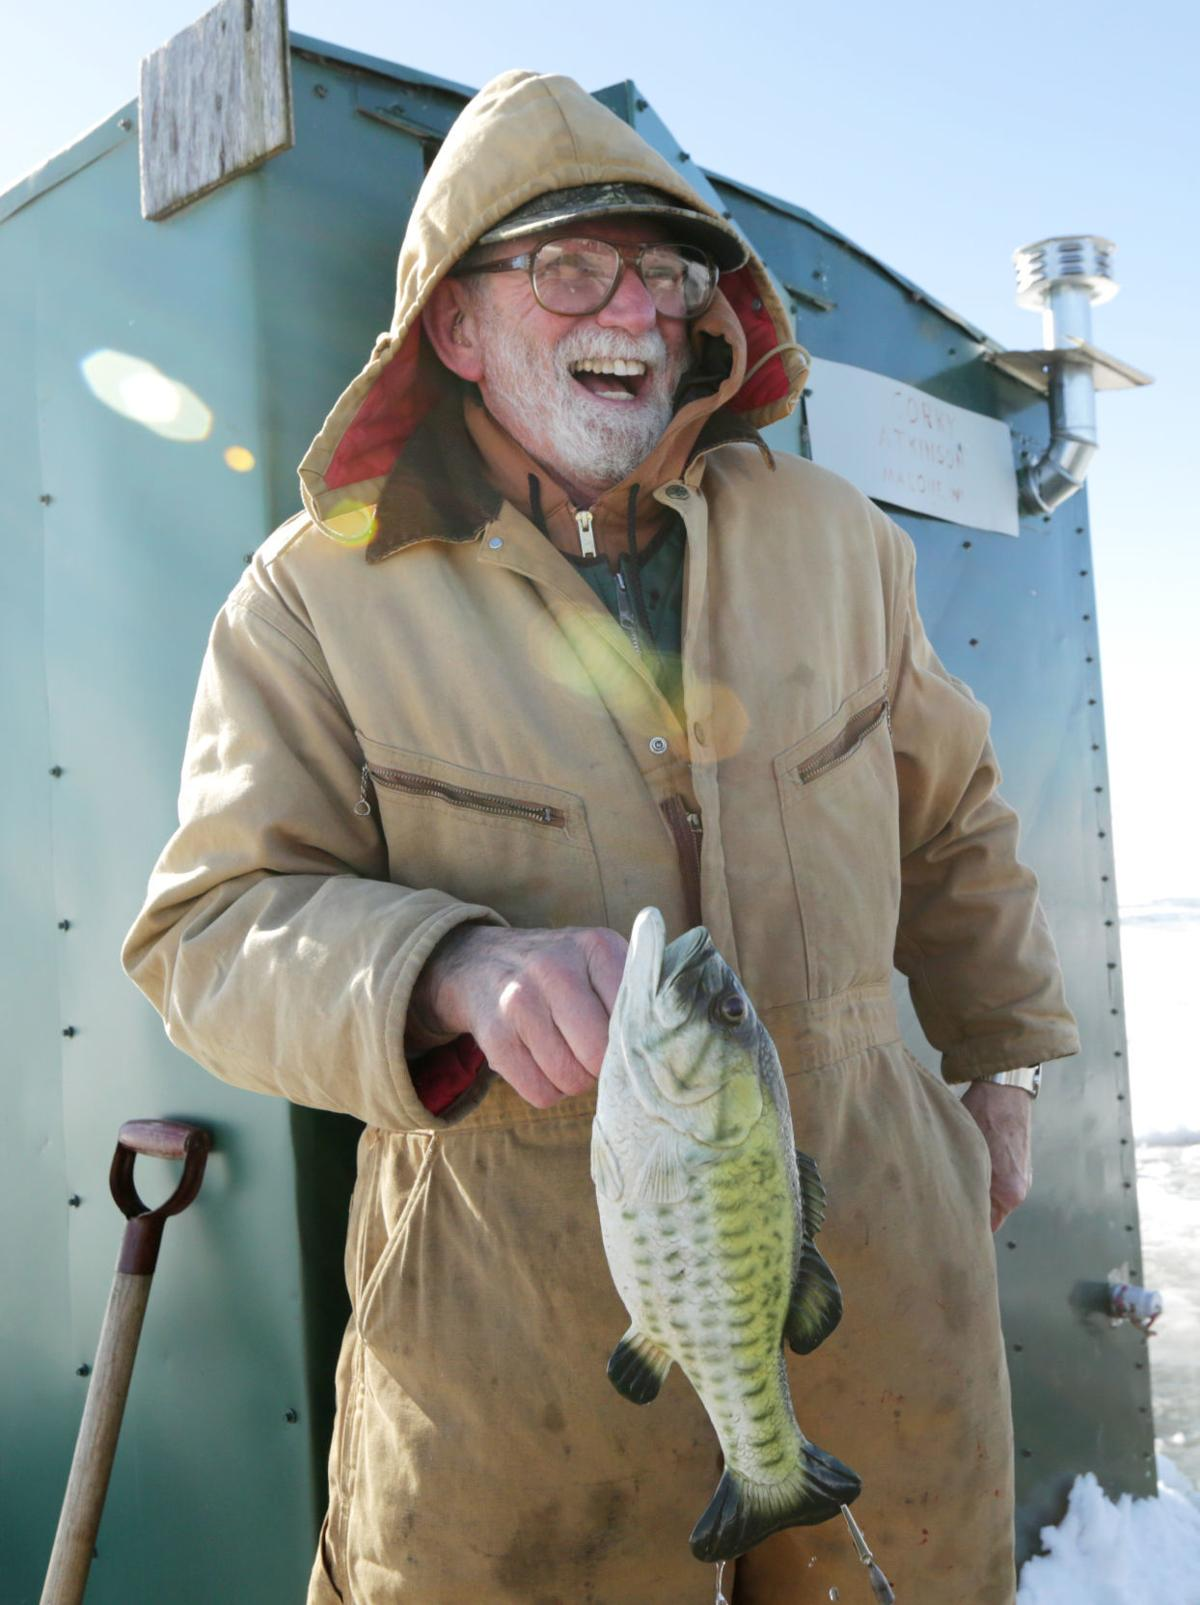 Patience pays off for a Lake Winnebago thrill in a season with